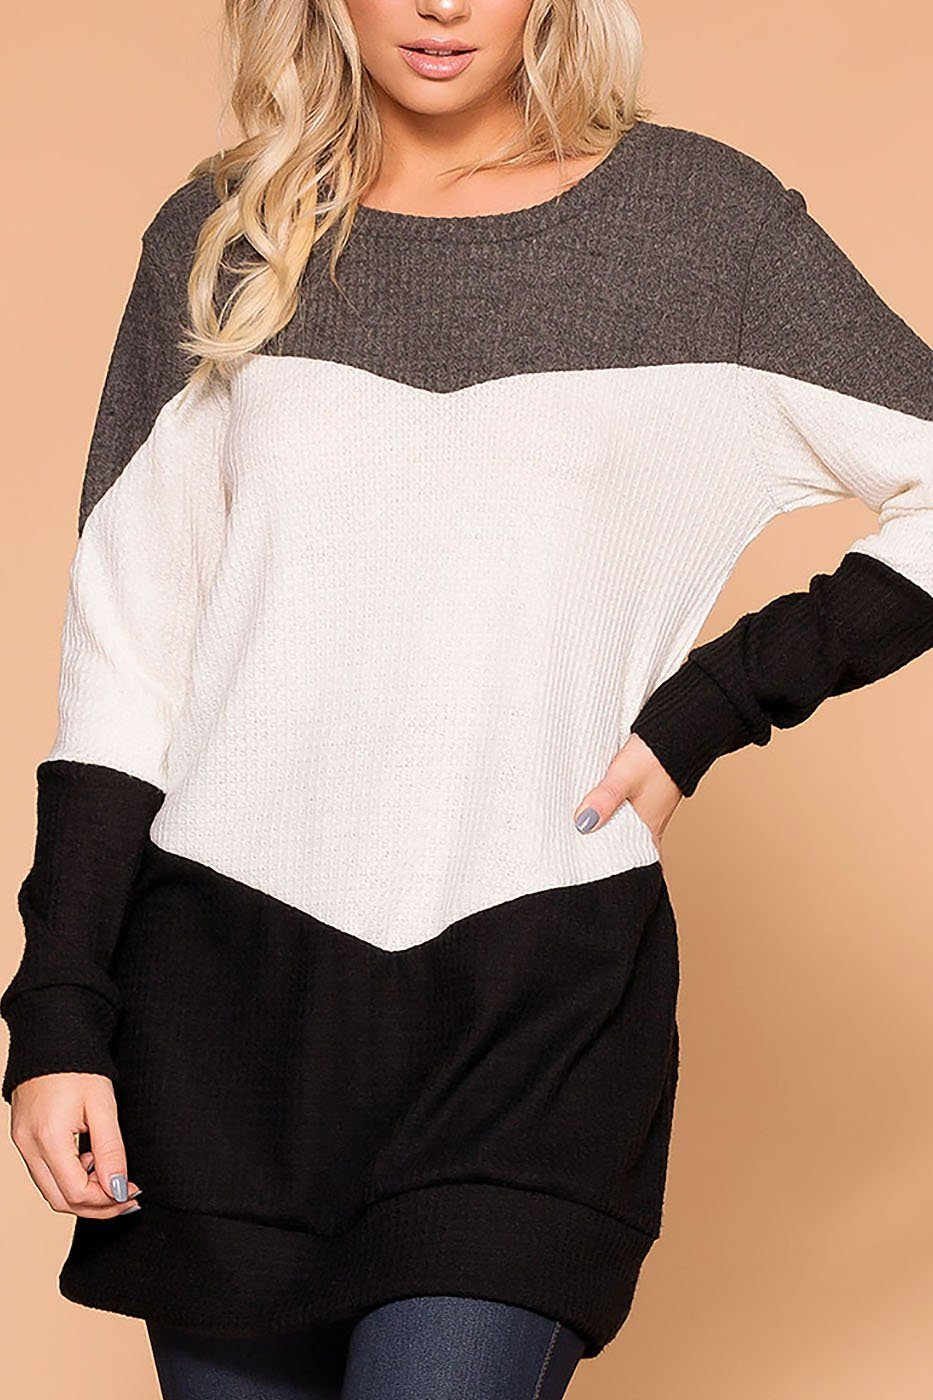 Izzy Charcoal Colorblock Top | Veveret